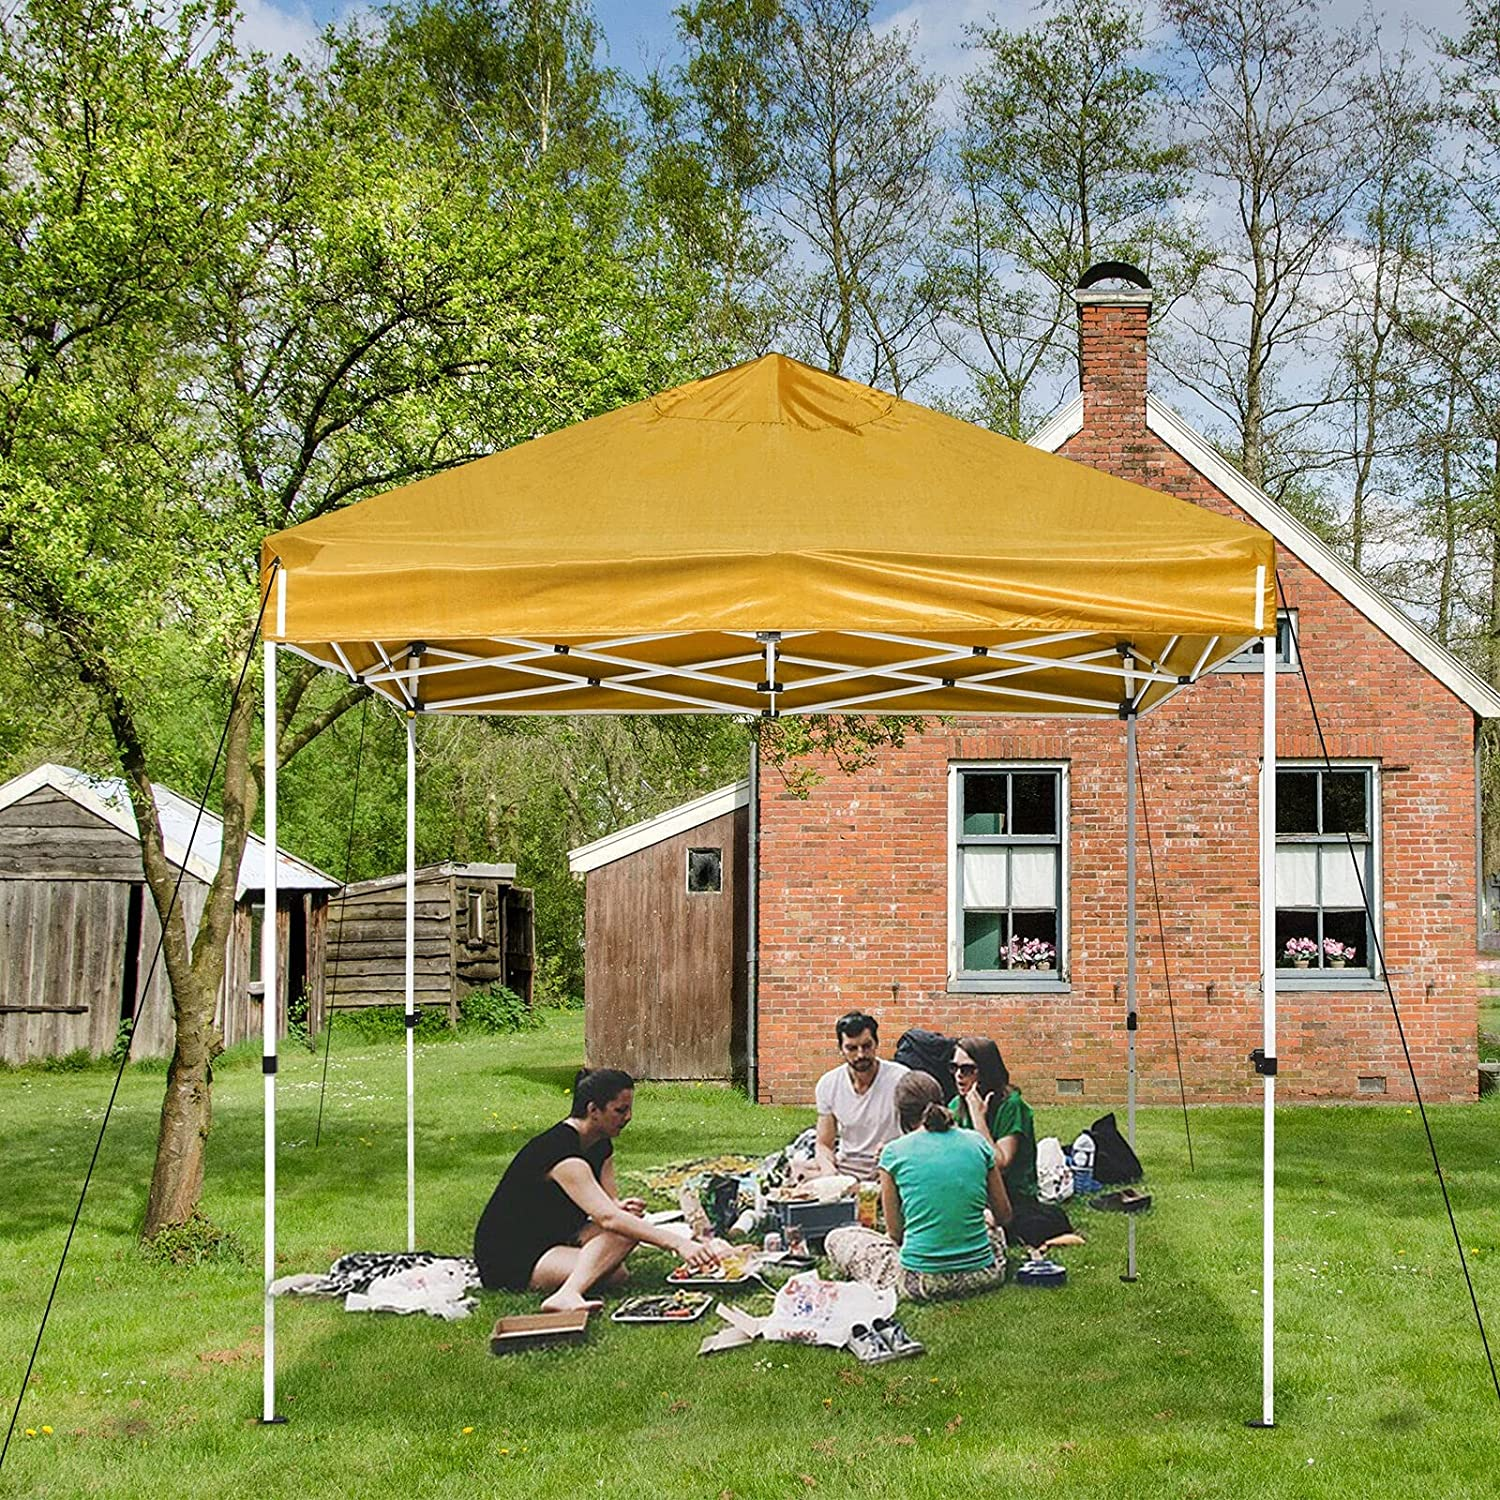 YJYDD 10x10ft High order Pop Up Canopy Tent B with Shelter Max 72% OFF Instant Portable